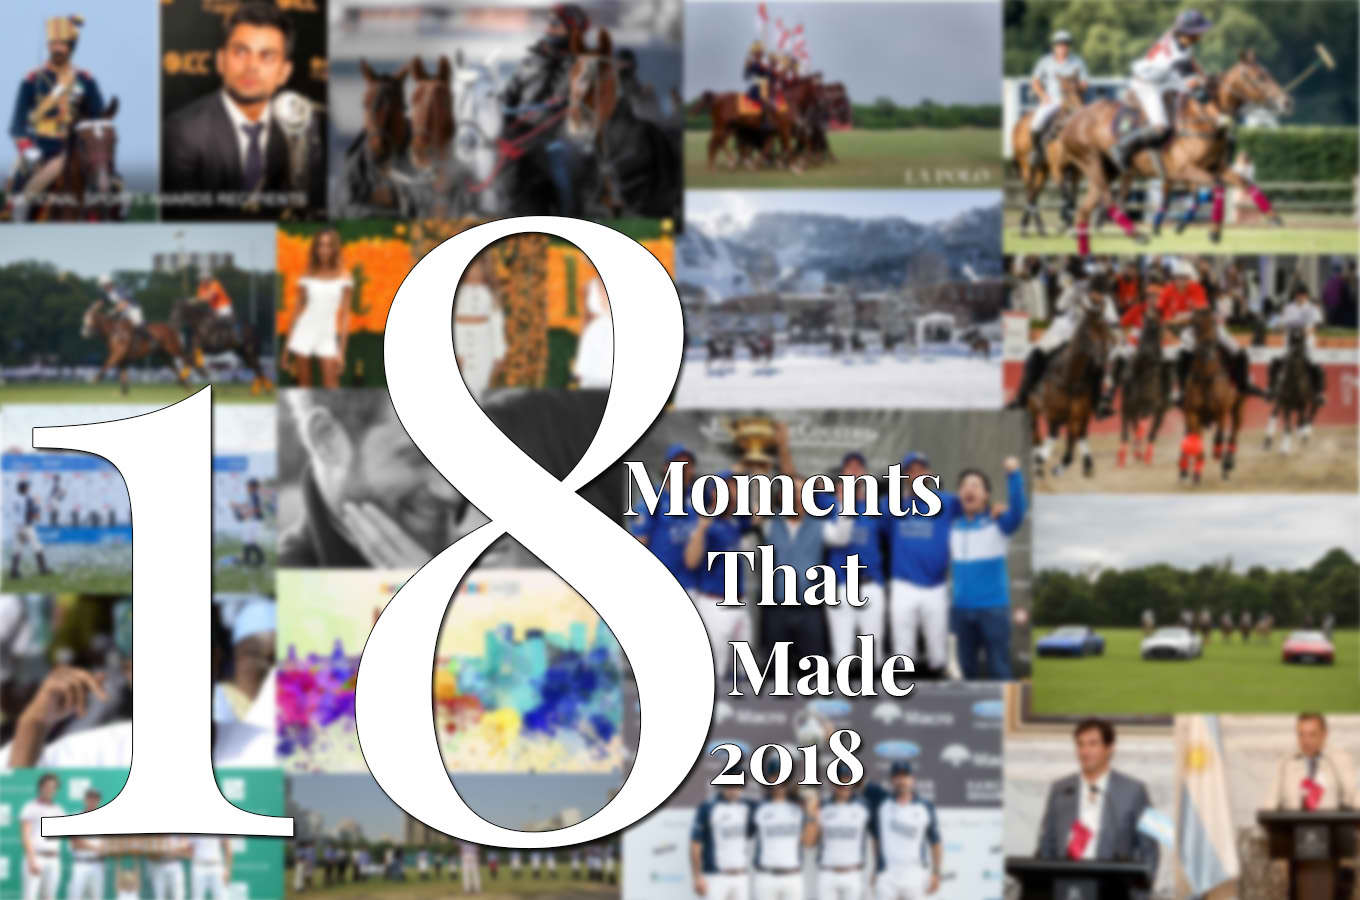 18 Moments That Made 2018